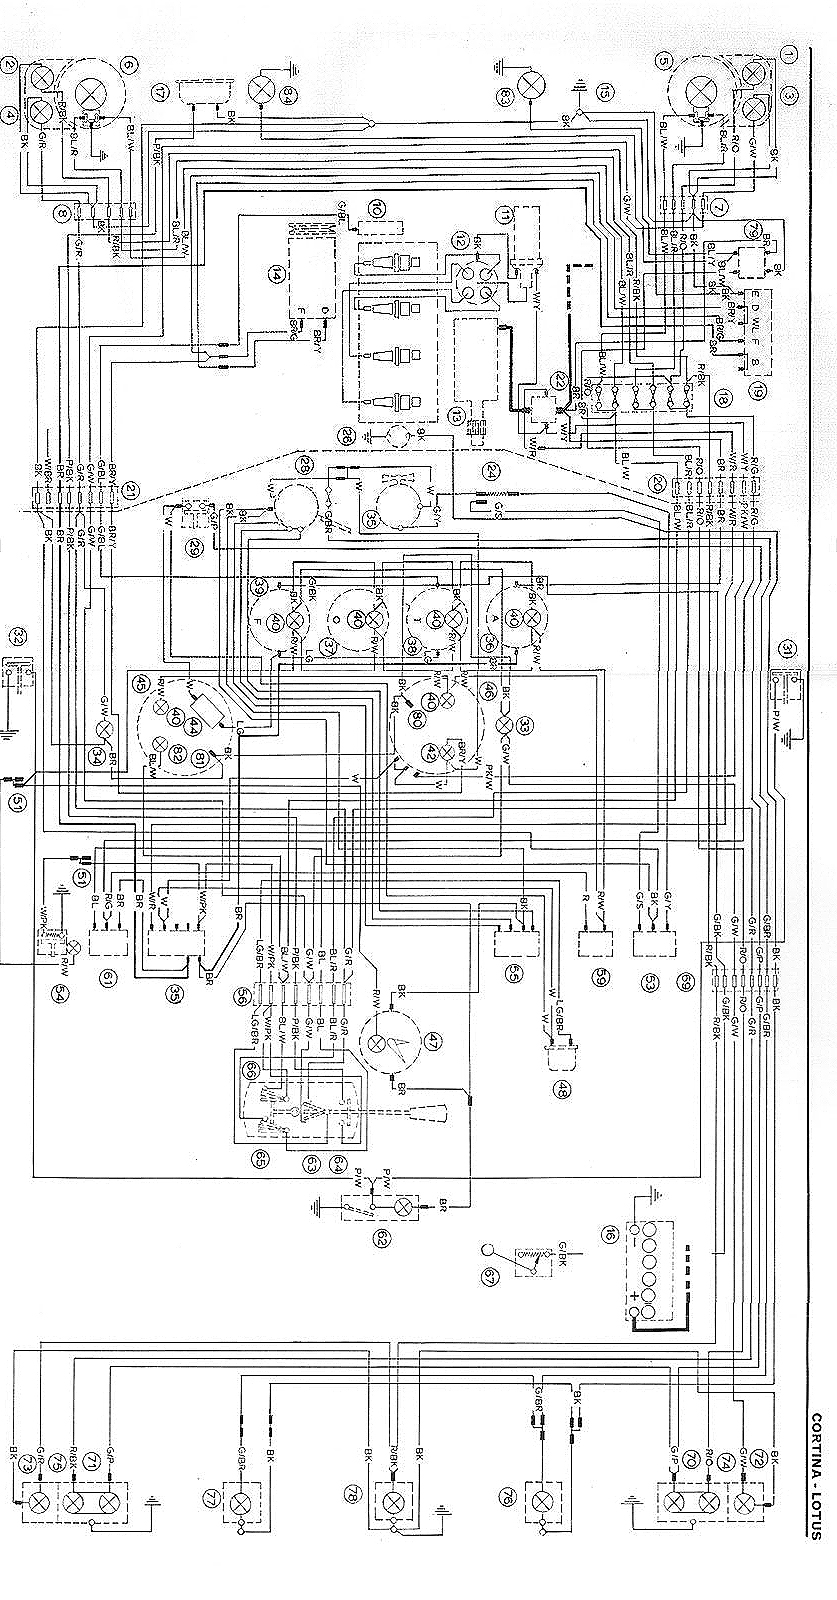 Ford Transit Wiring Diagram On 53 Ford Focus Wiring Diagram